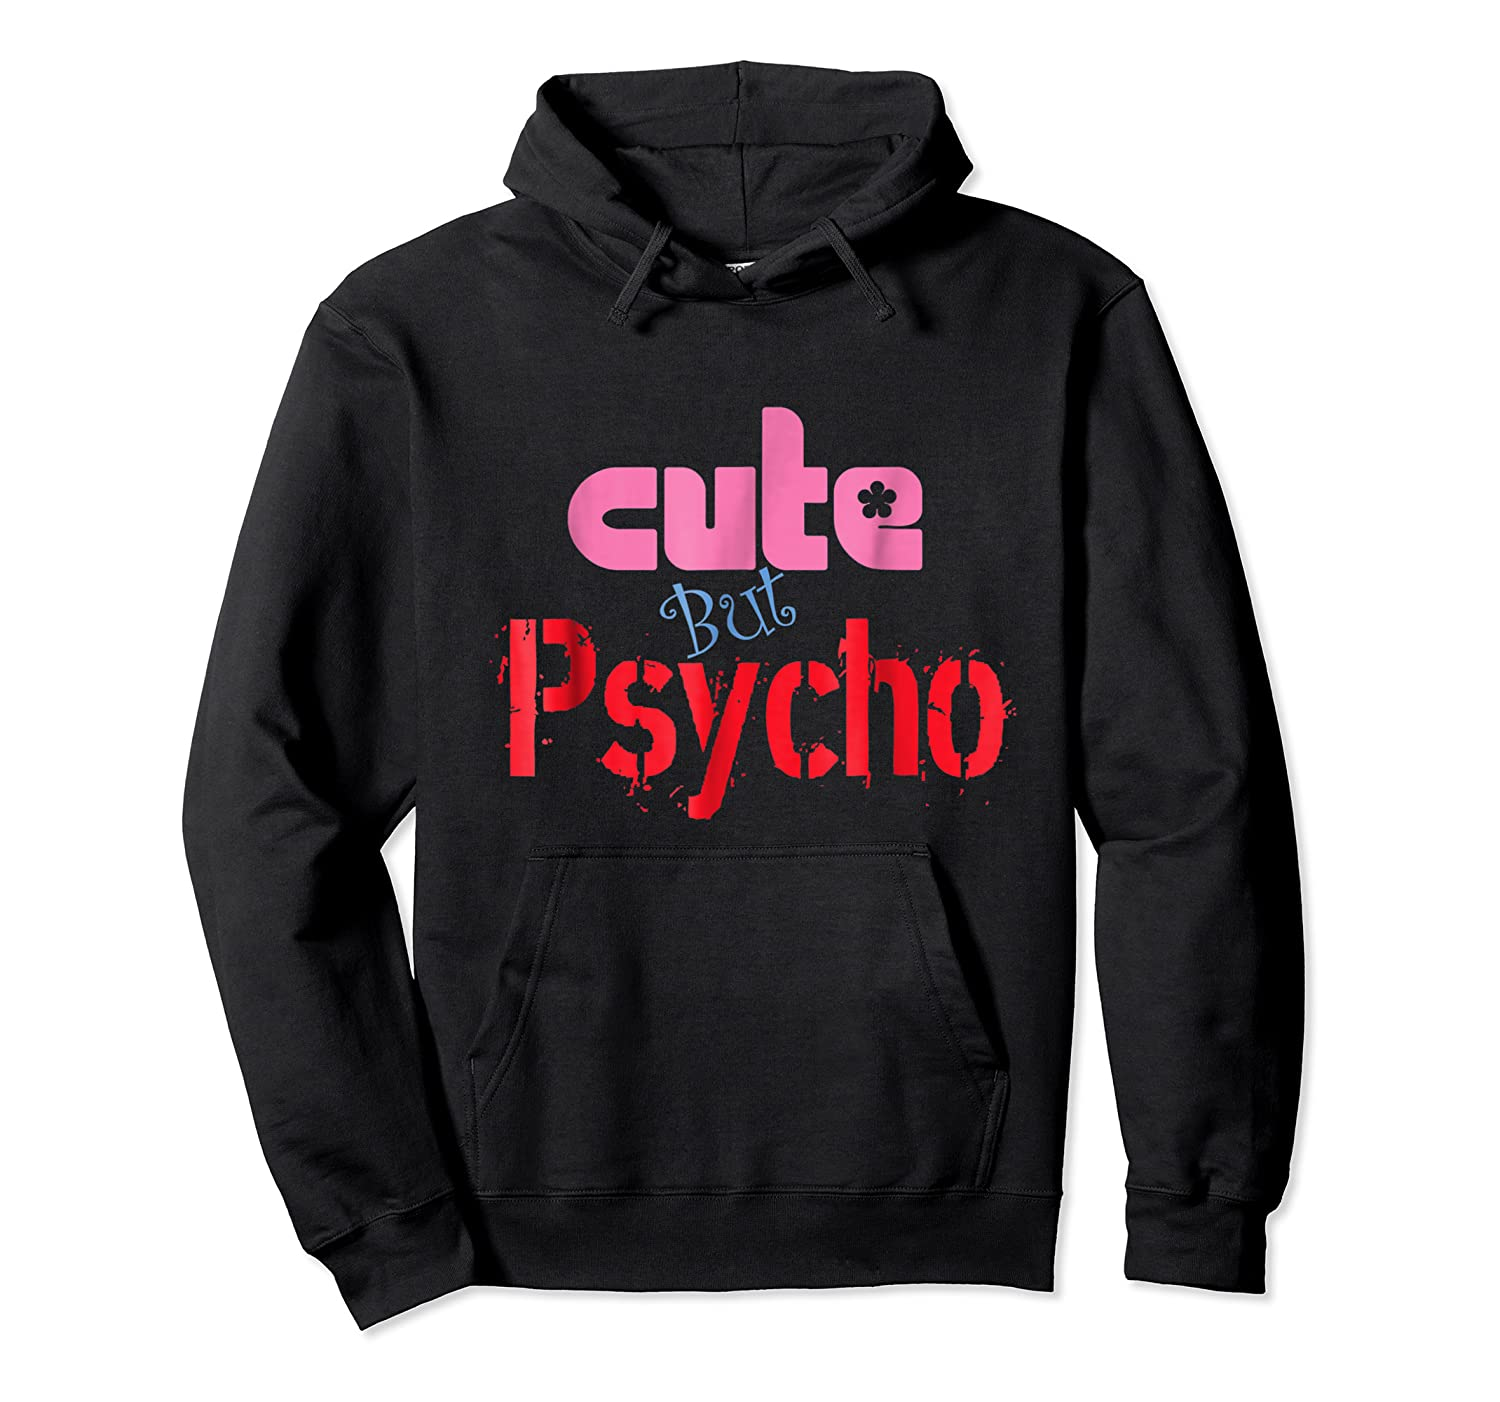 Cute But Psycho - Funny Gift Tshirt Unisex Pullover Hoodie